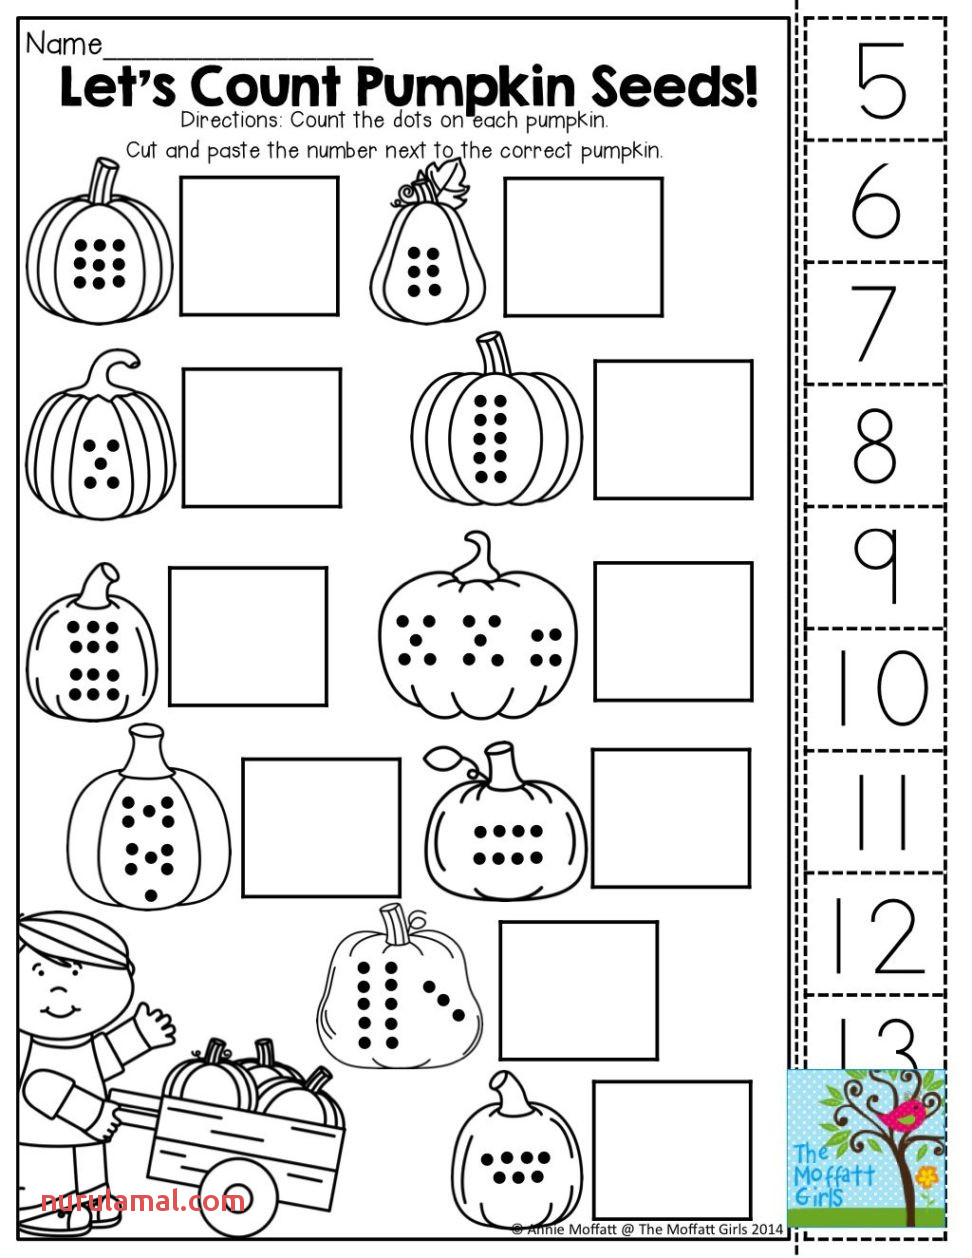 Fun Worksheets for Kindergarten Counting Math Games Free